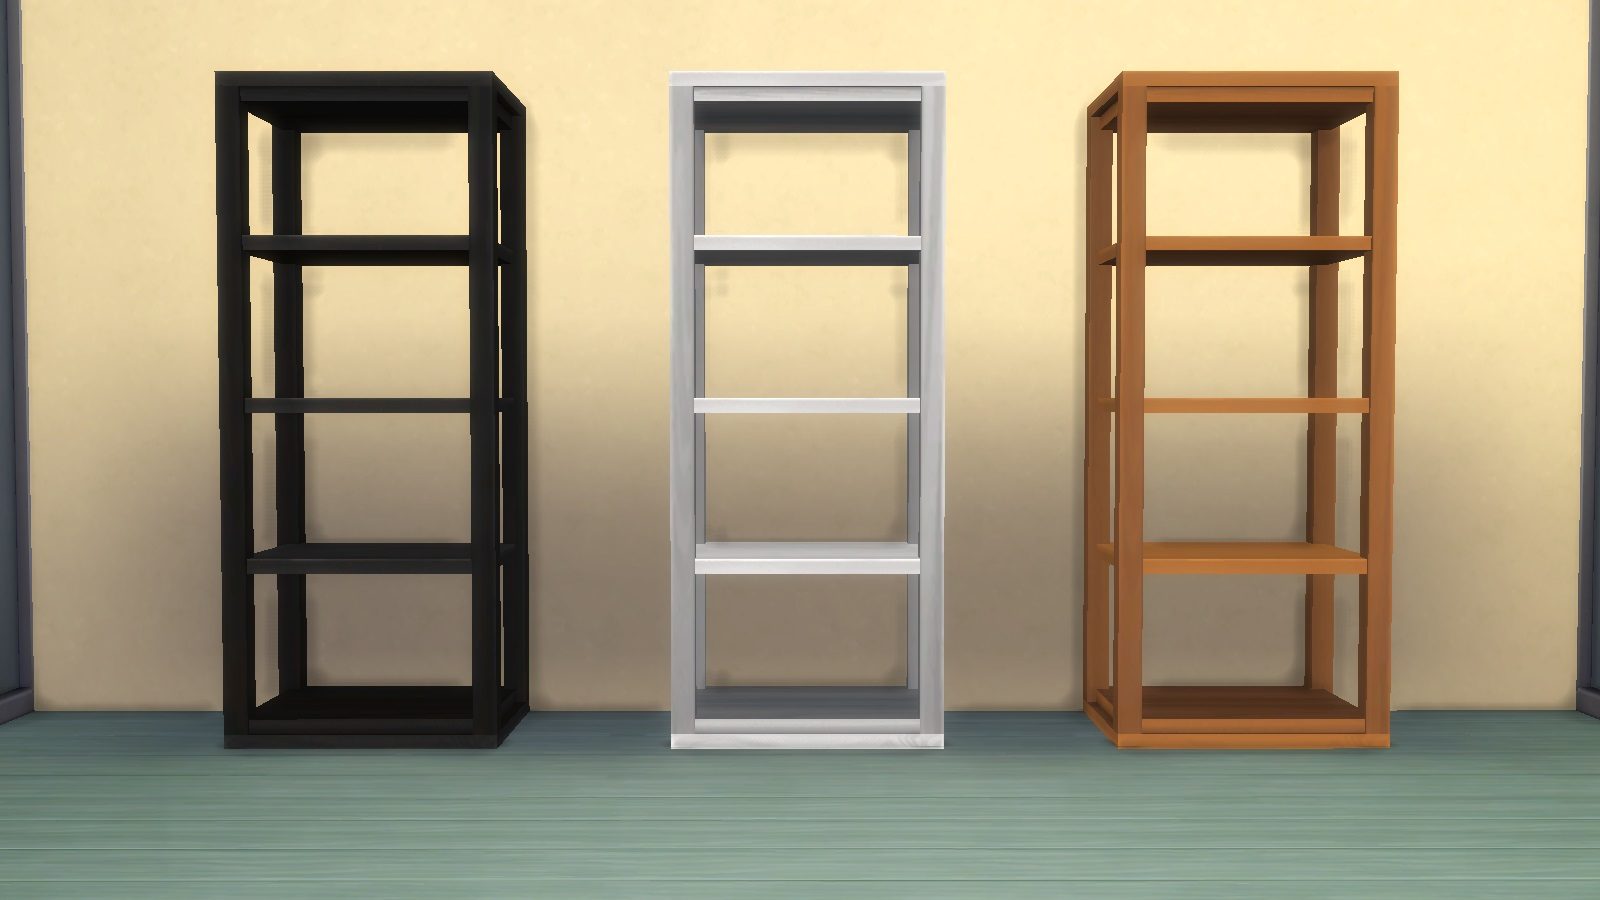 Mod The Sims Simplicity Collectible Shelf Maxis Match